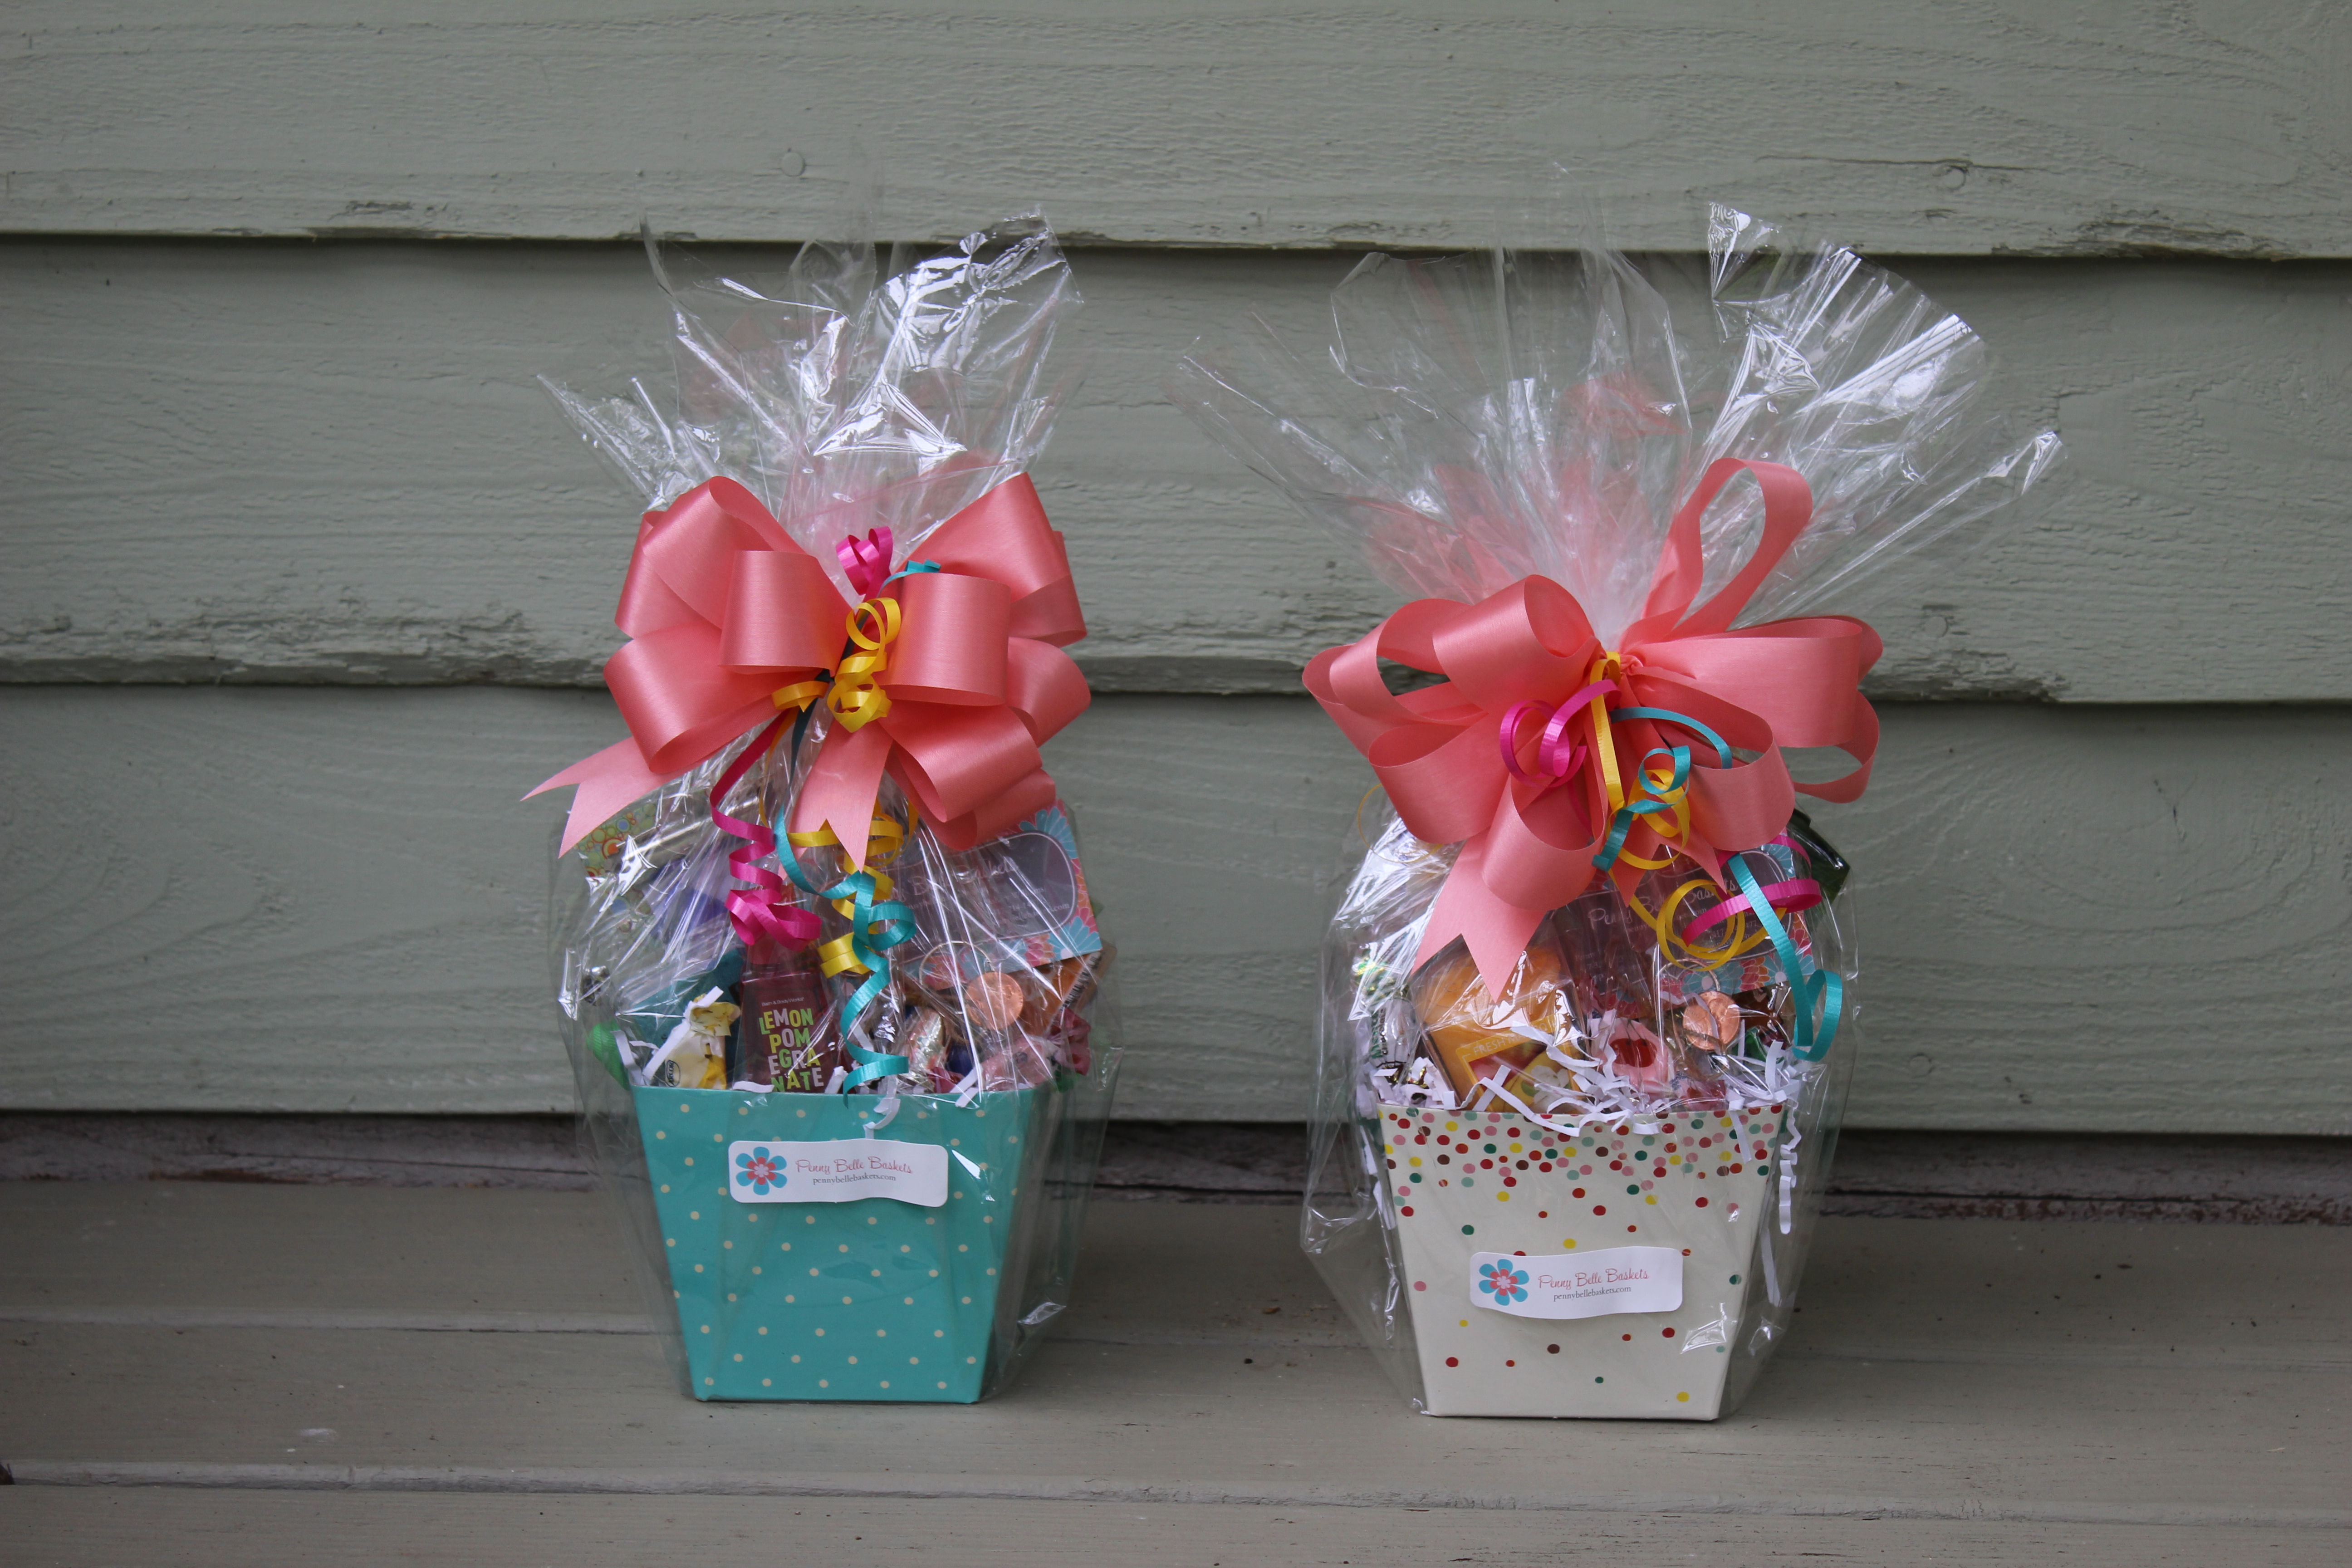 Penny belle baskets creating memories in a basket meeting with new companies this week this gift basket is a token of my appreciation negle Image collections